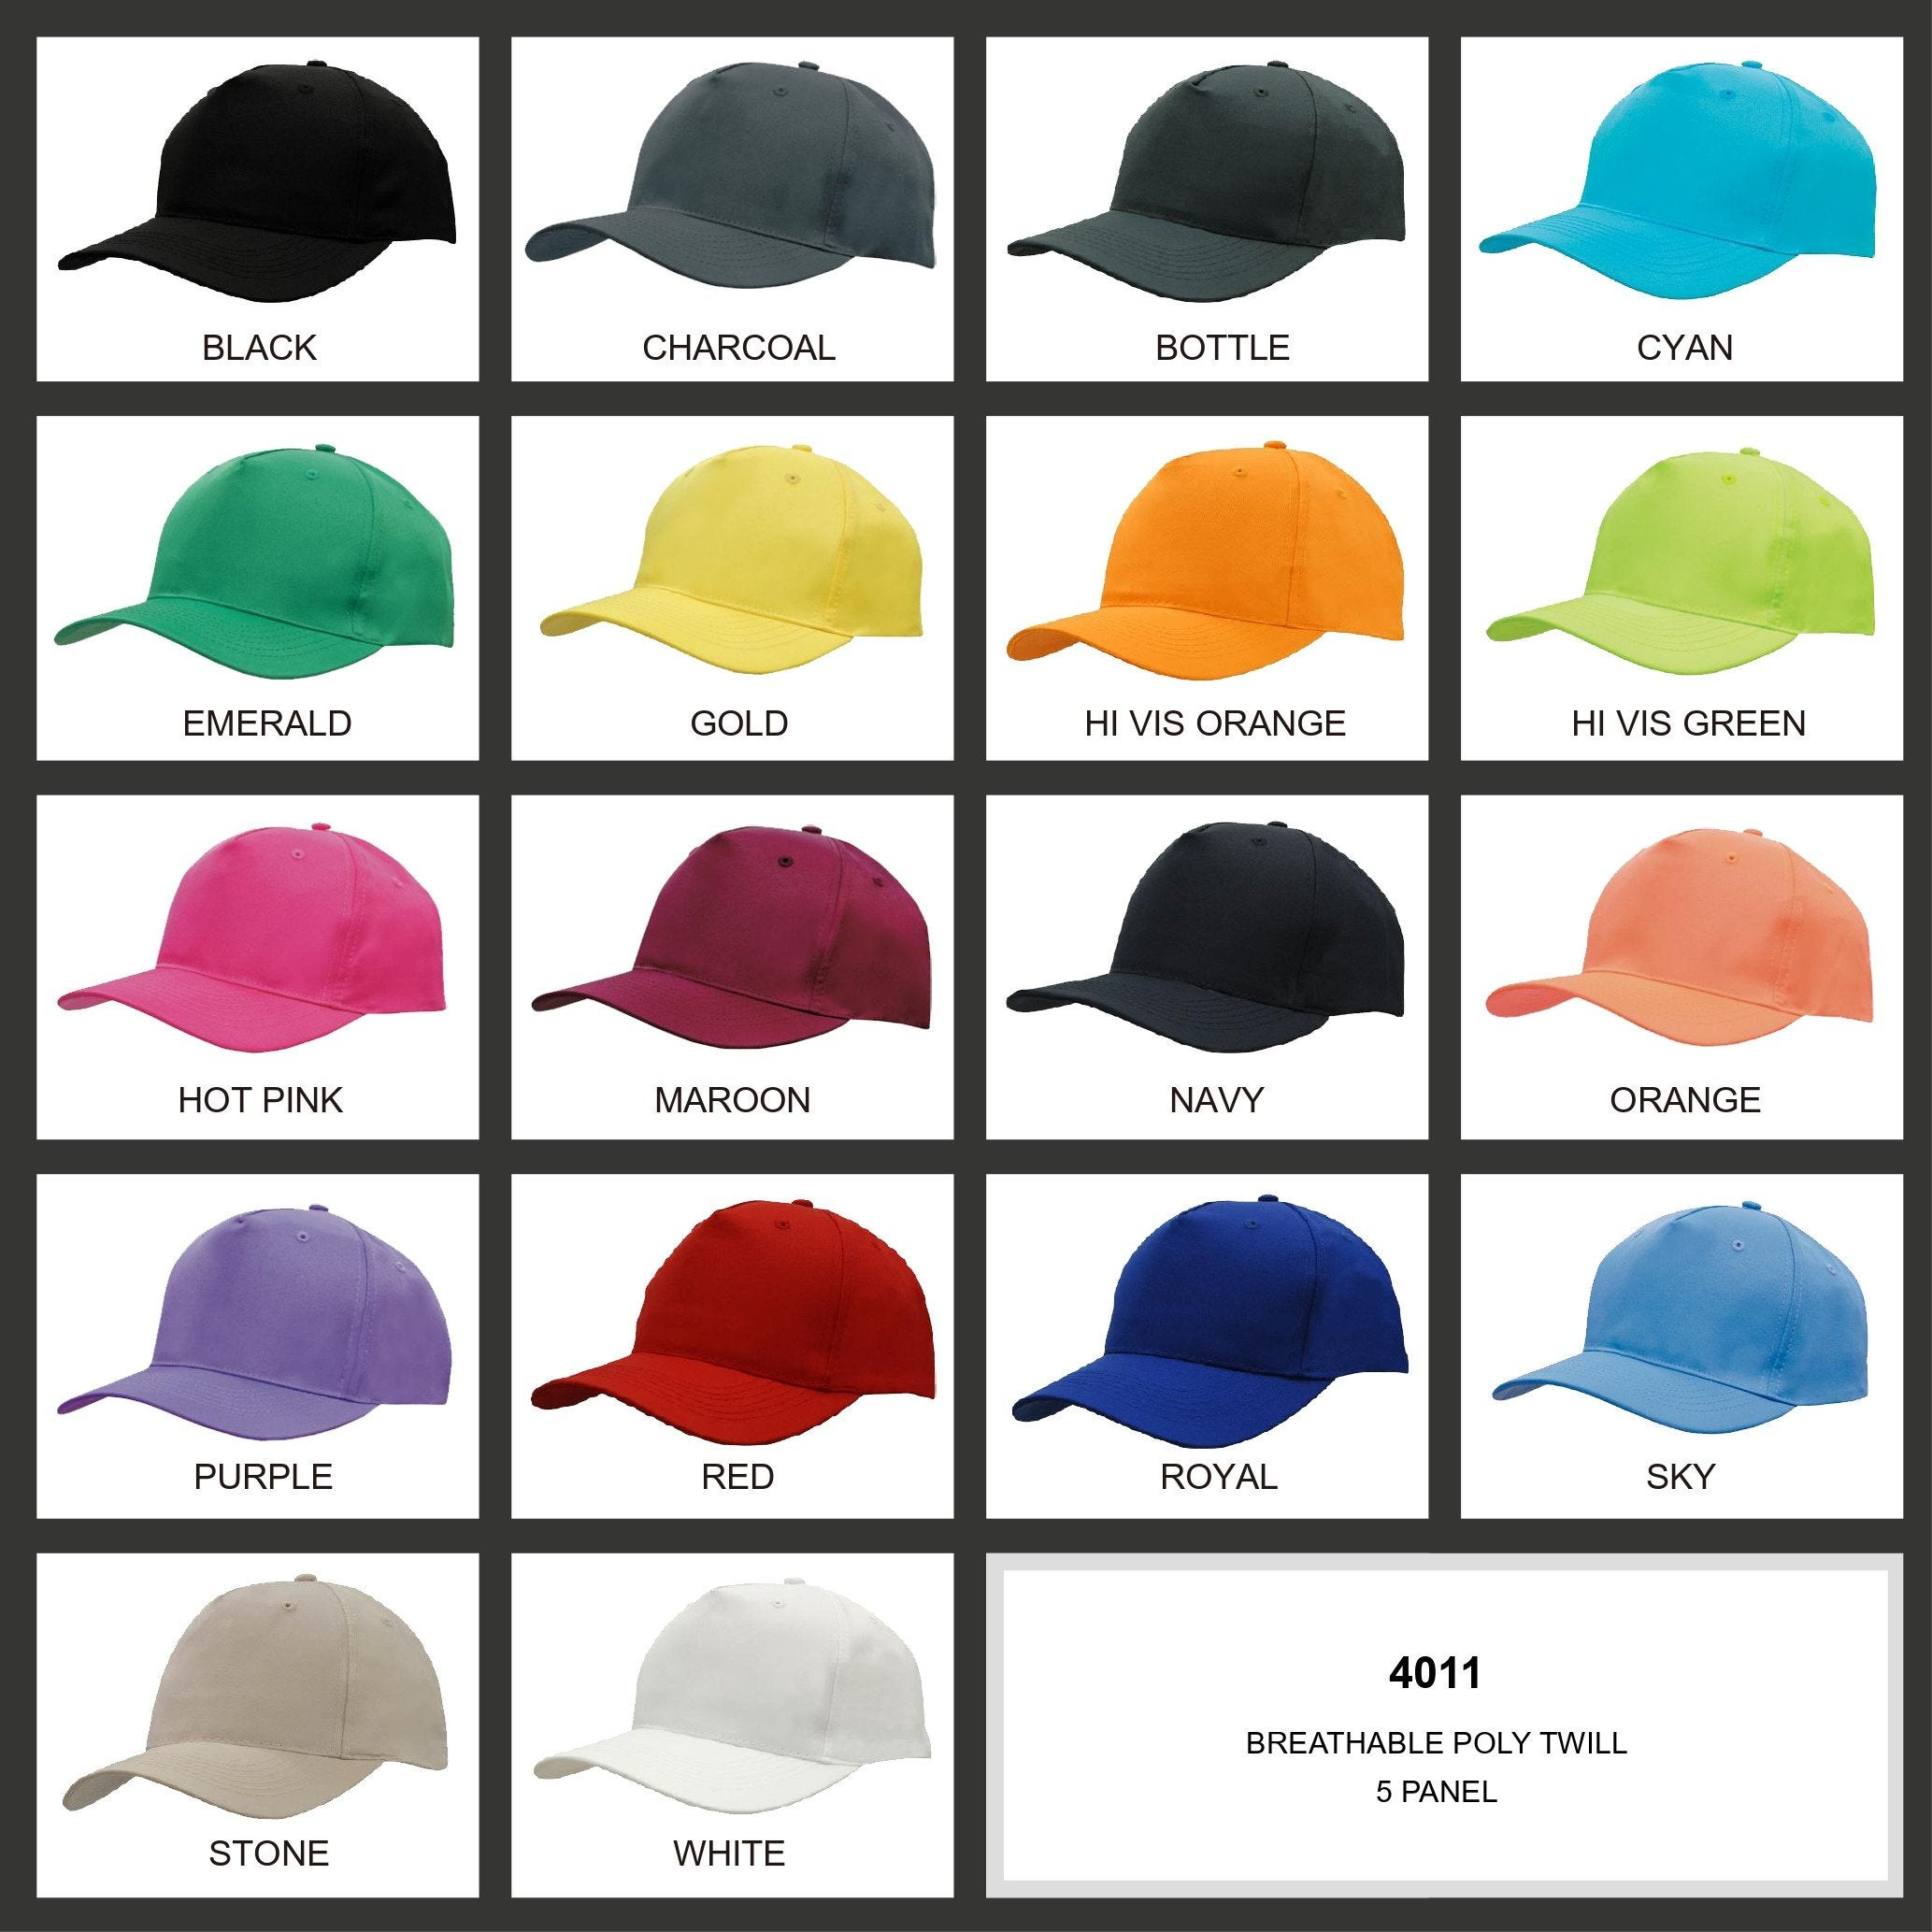 Breathable Poly Twill Cap